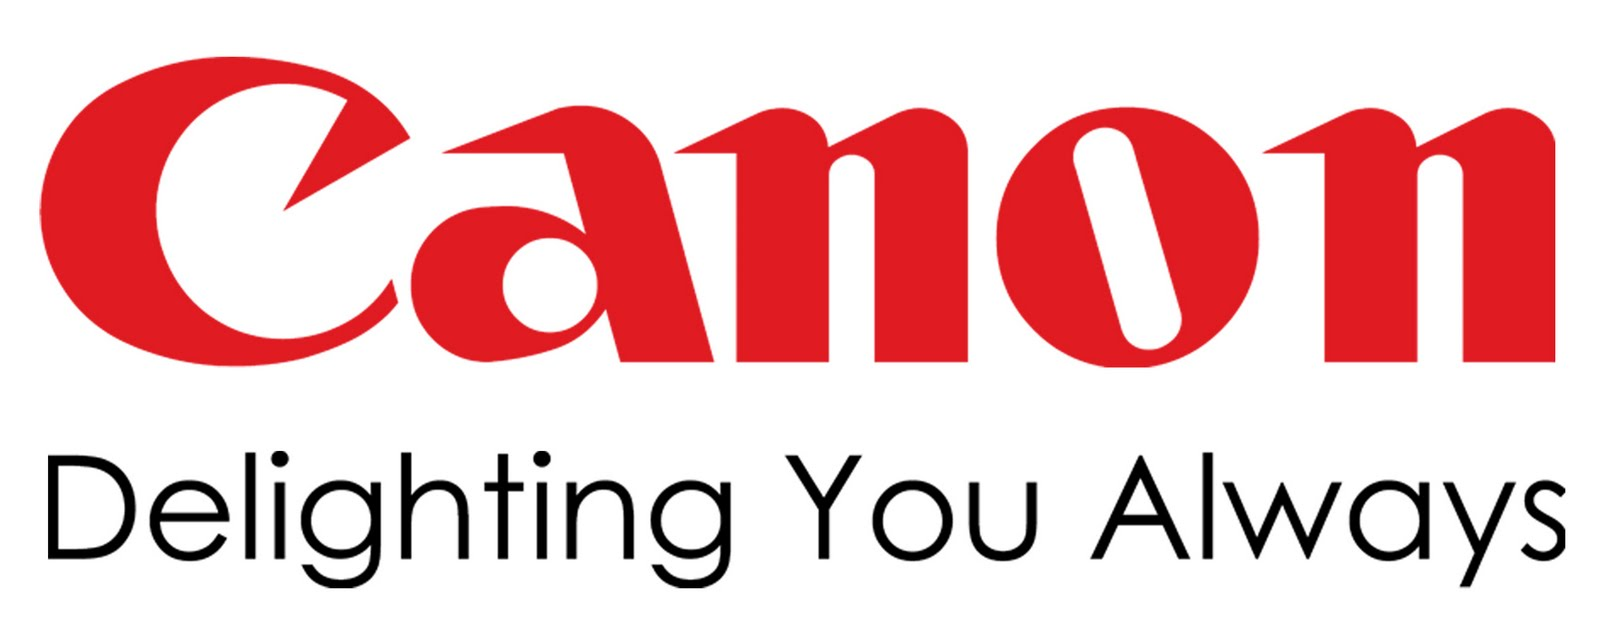 canon logo png transparent canon logopng images pluspng